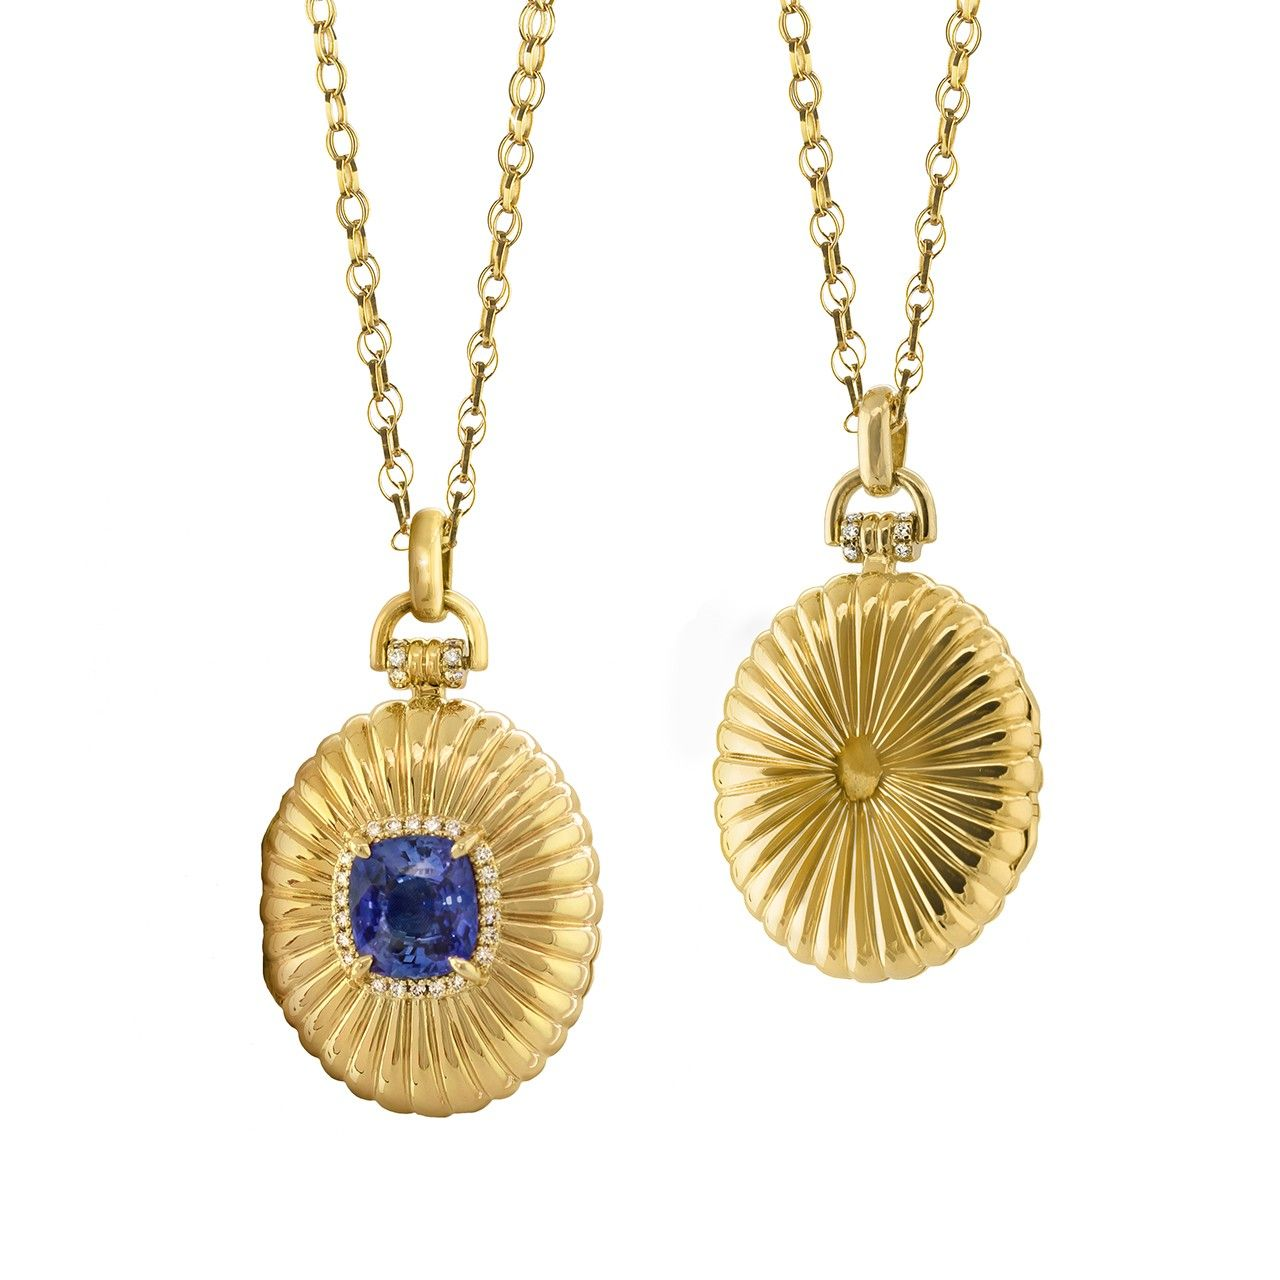 the inspiration uk show be gold rose necklace us ugc wear you how locket yours vermeil white lockets biography sapphire